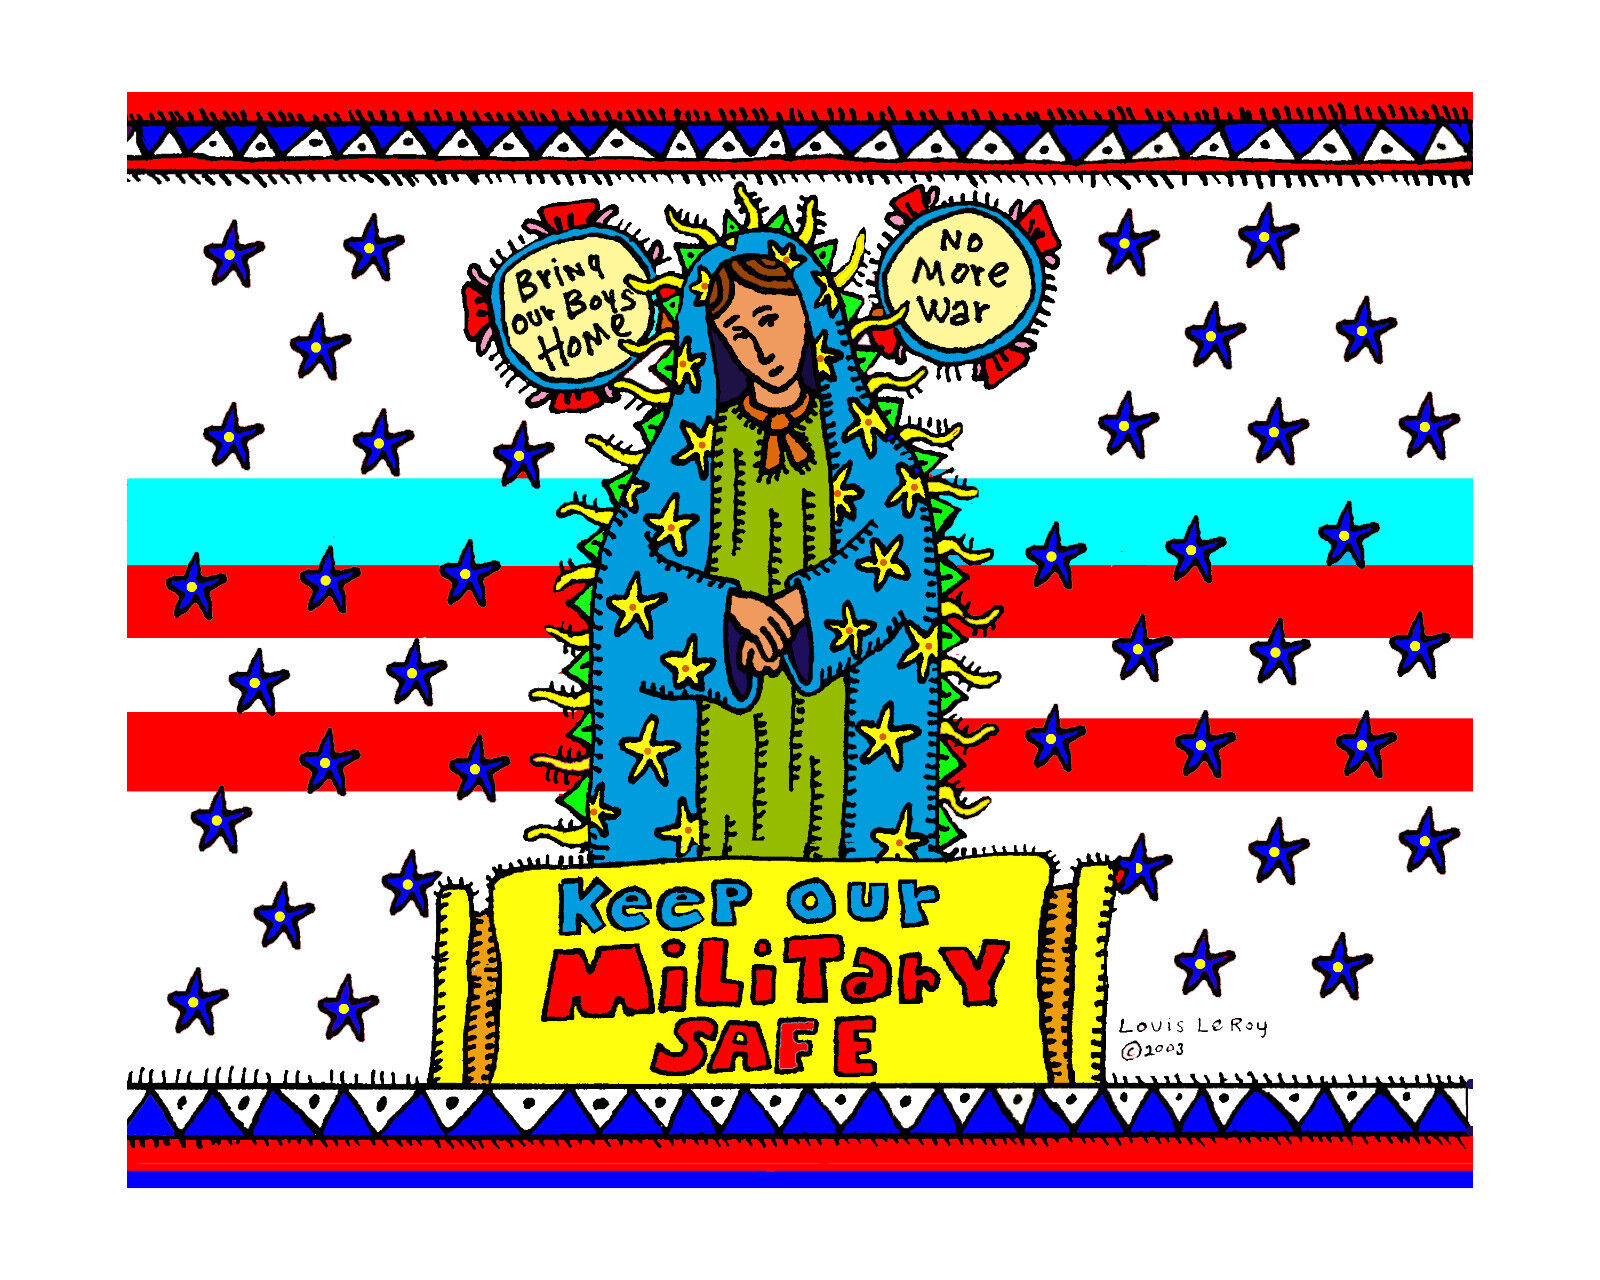 CANDELITO - FINE ART PRINT FROM ORIGINAL DRAWING - KEEP OUR MILITARY SAFE  - $18.00